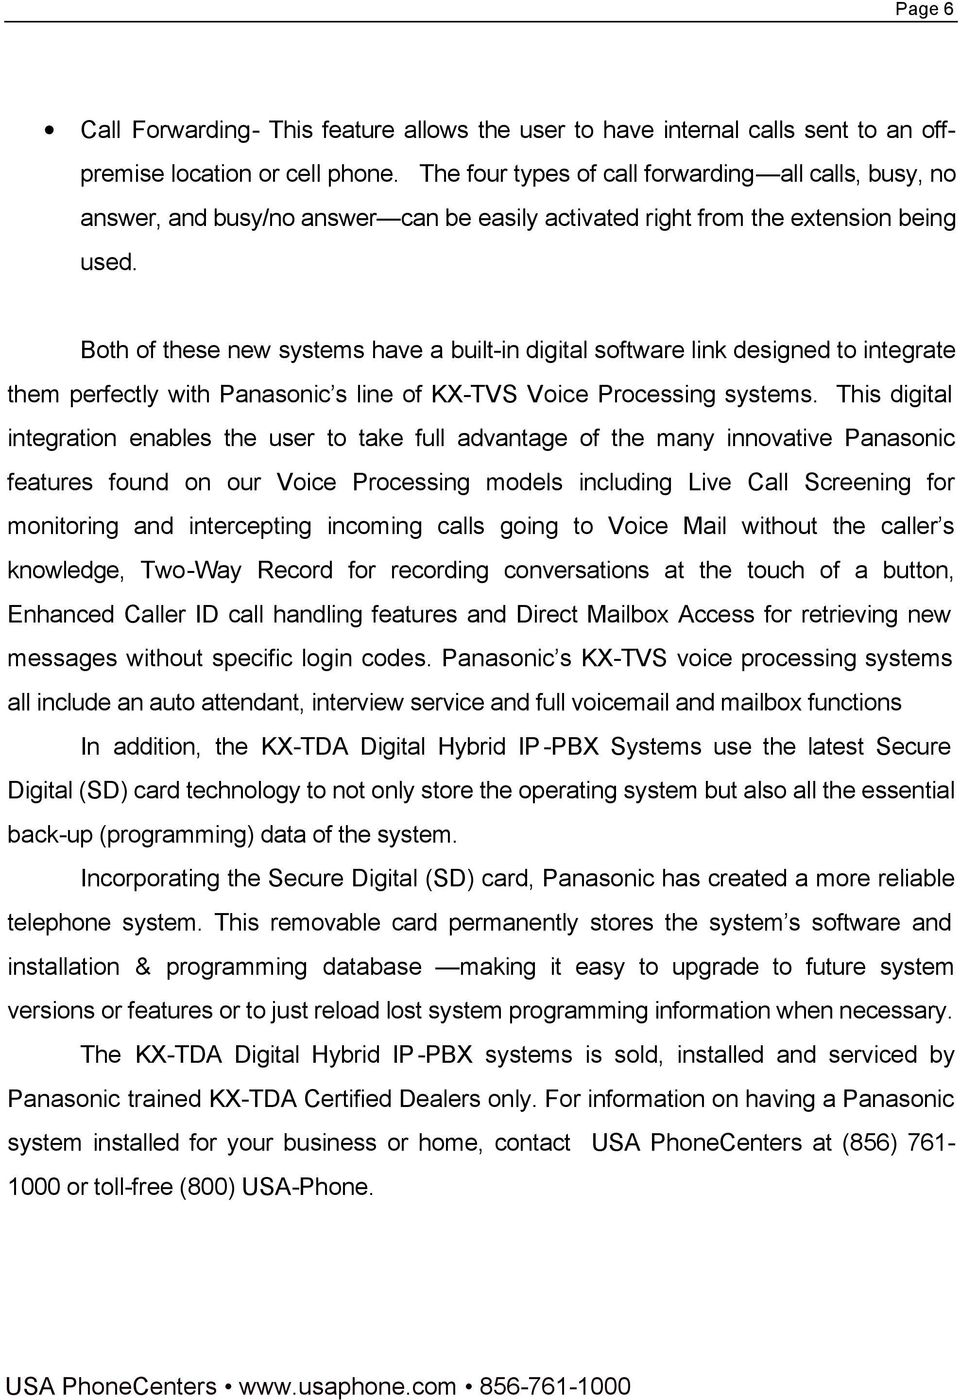 Both of these new systems have a built-in digital software link designed to integrate them perfectly with Panasonic s line of KX-TVS Voice Processing systems.